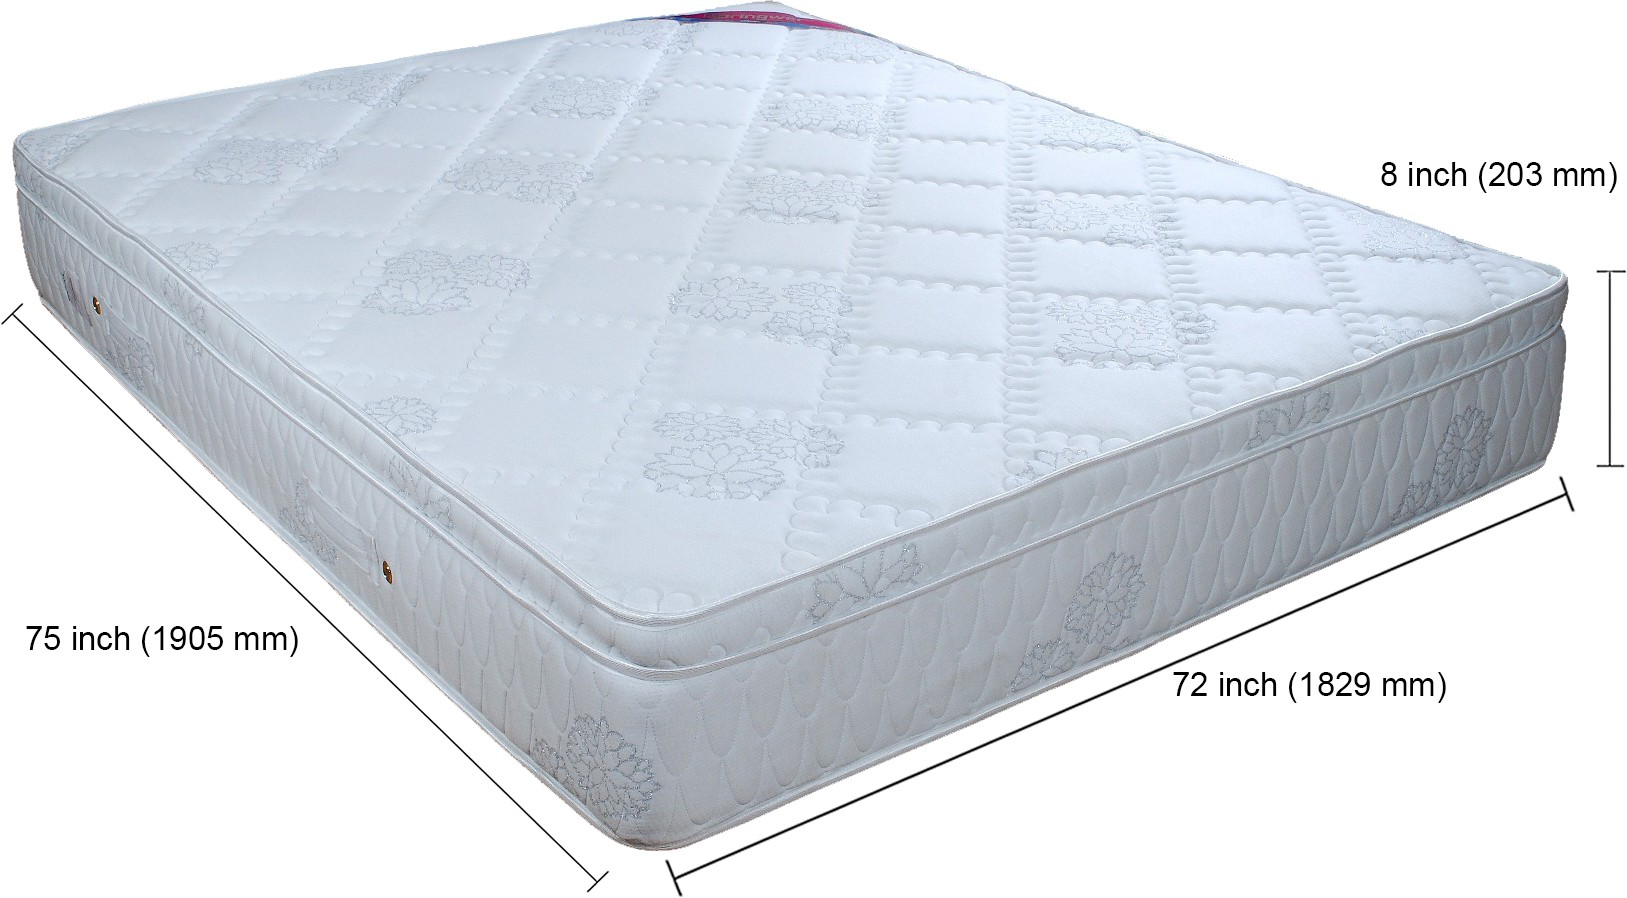 Springwel Luxury Collection 8 inch King Spring Mattress